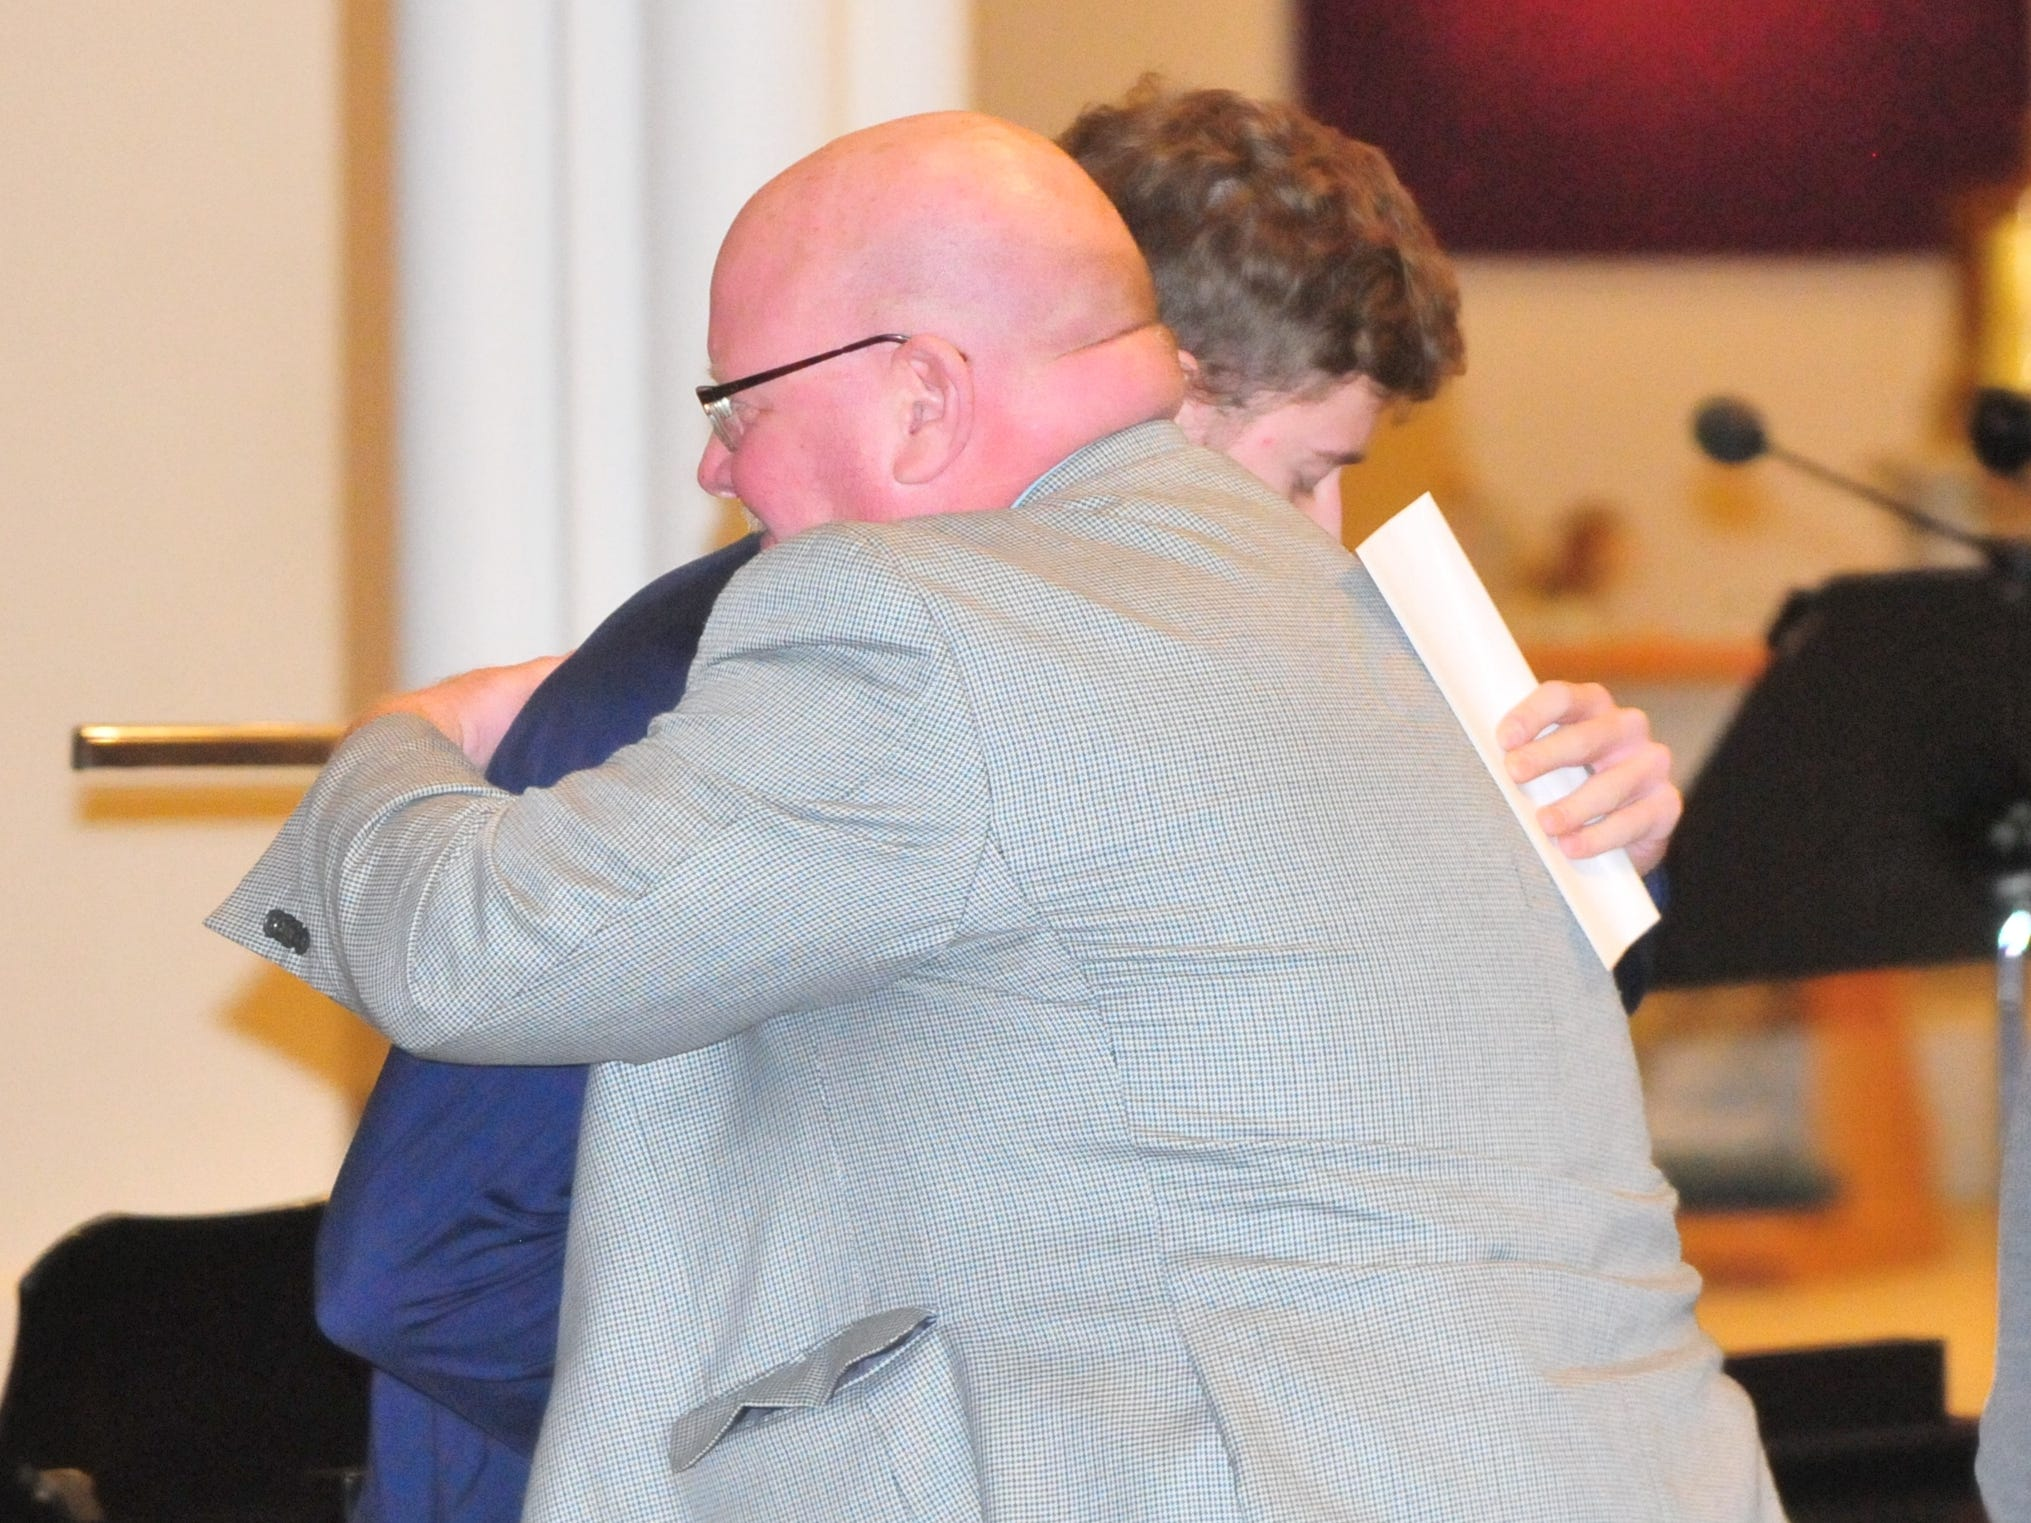 Seton Catholic senior Joseph Lahmann hugs his father Patrick after finding out he won the Lilly Endowment Community Scholarship after morning mass at St. Andrew's Catholic Church in Richmond Tuesday, Dec. 11, 2018.